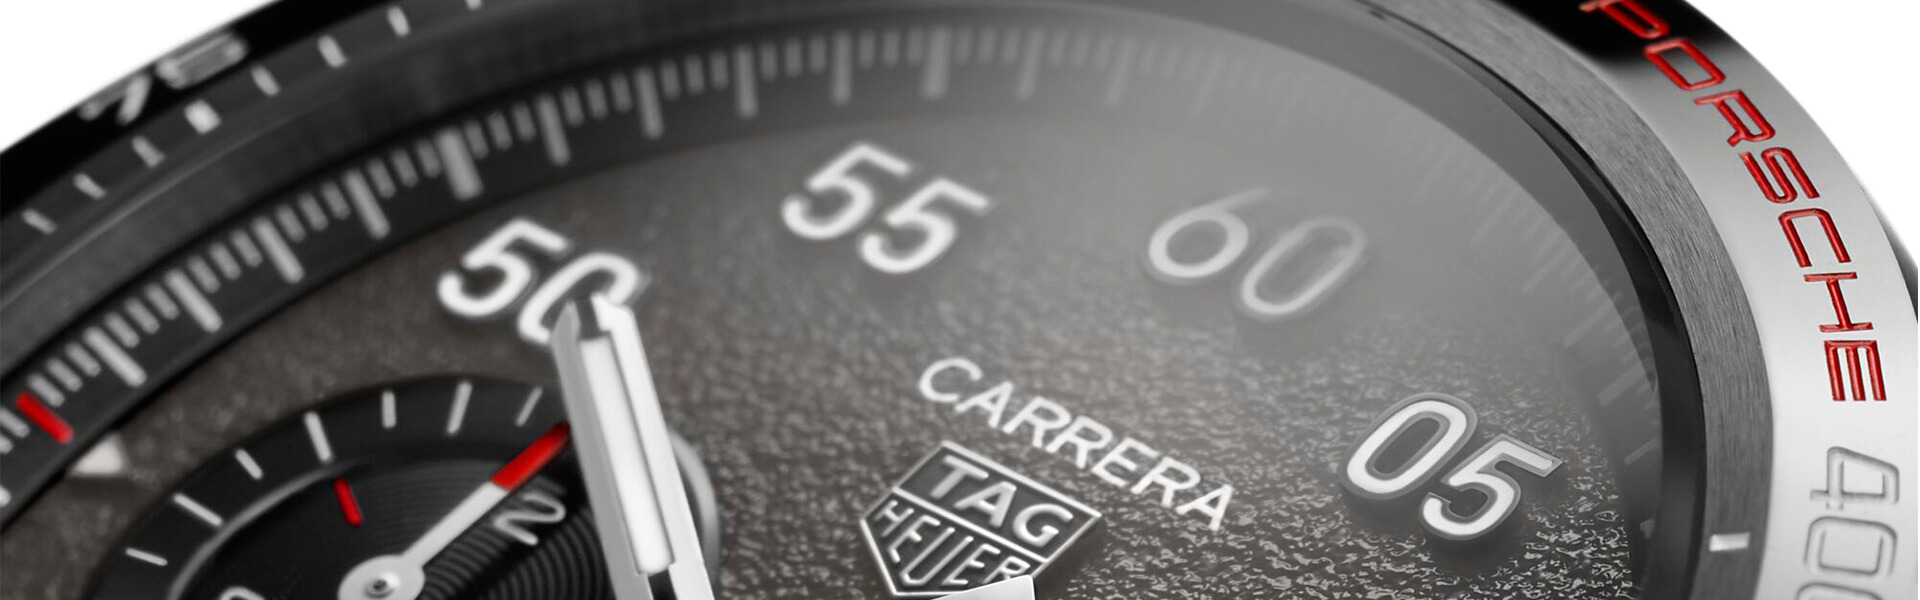 Driven by a common history that essentially involves innovation and motorsport, led by visionary families values of entrepreneurship, necessity and performance have catapulted them to the forefront of their respective industries, TAG Heuer and Porsche bring together folds in an extensive partnership that will set a new standard when it comes to brand integration...  Carrera: an iconic name that has been associated with TAG Heuer and Porsche for generations, was a natural choice as the first product of this creative collaboration. This new watch is a first indication of what the two brands can achieve together and also a tribute to the legacy of both, on and off the track.  The TAG Heuer Carrera Porsche Chronograph is an exquisite example of collaboration, cooperation, and coordination. Based on the design of the Carrera Sport, from TAG Heuer, with a characteristic tachymeter scale engraved on the bezel, it features a number of features inspired by the essence of Porsche design. This watch is a harmonious blend of the TAG Heuer and Porsche universes, reflecting the excellence of both names, without diluting the essence of either. It is a convincing union between two icons of performance, quality, and innovation.